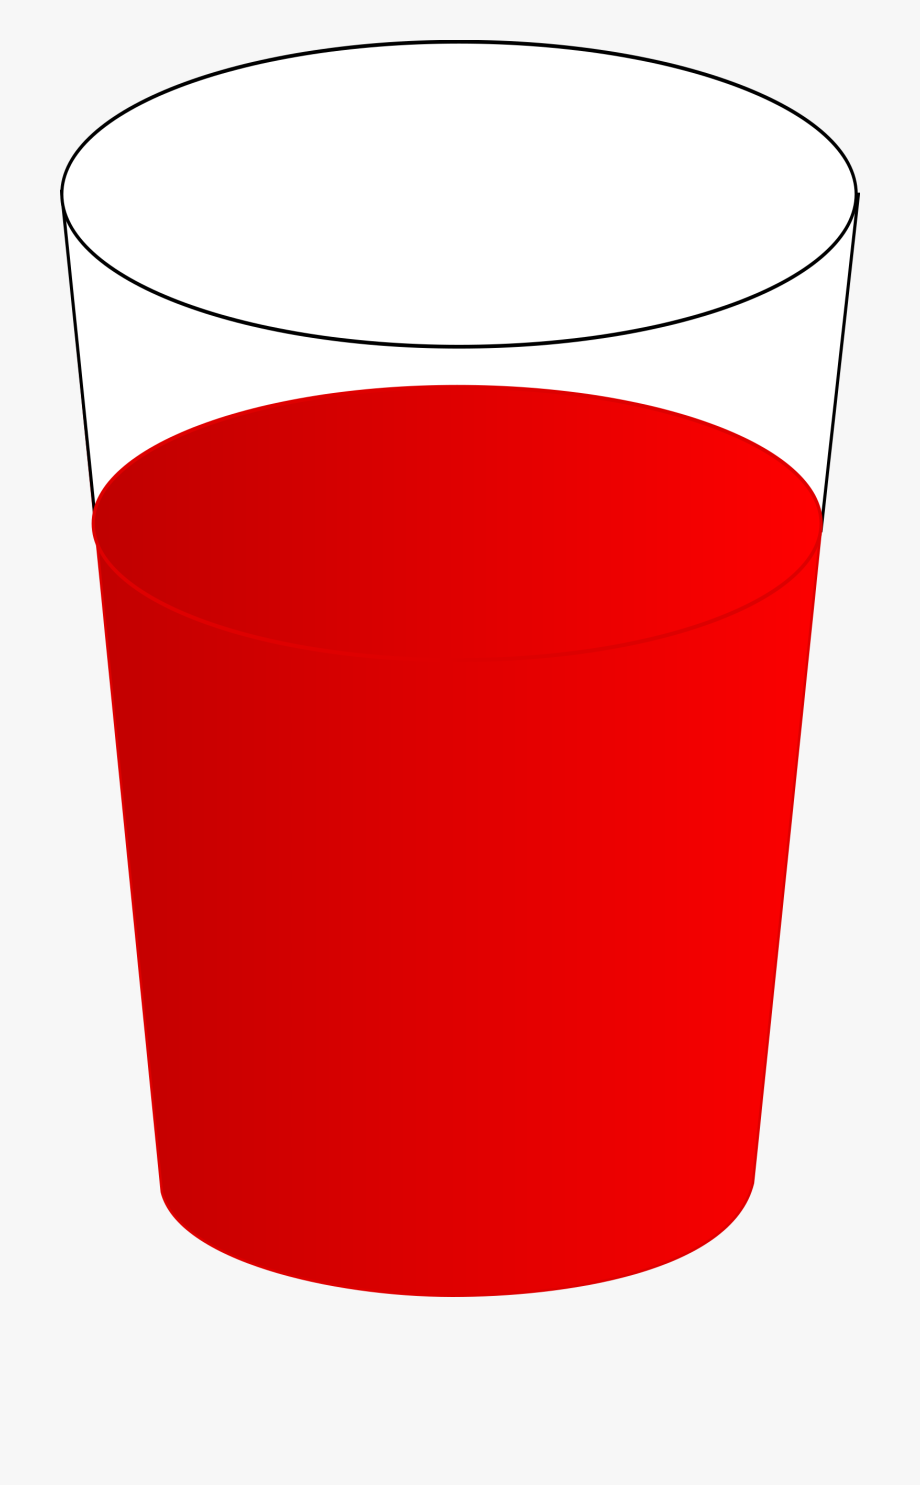 Water clipart red. Drinking glass with big